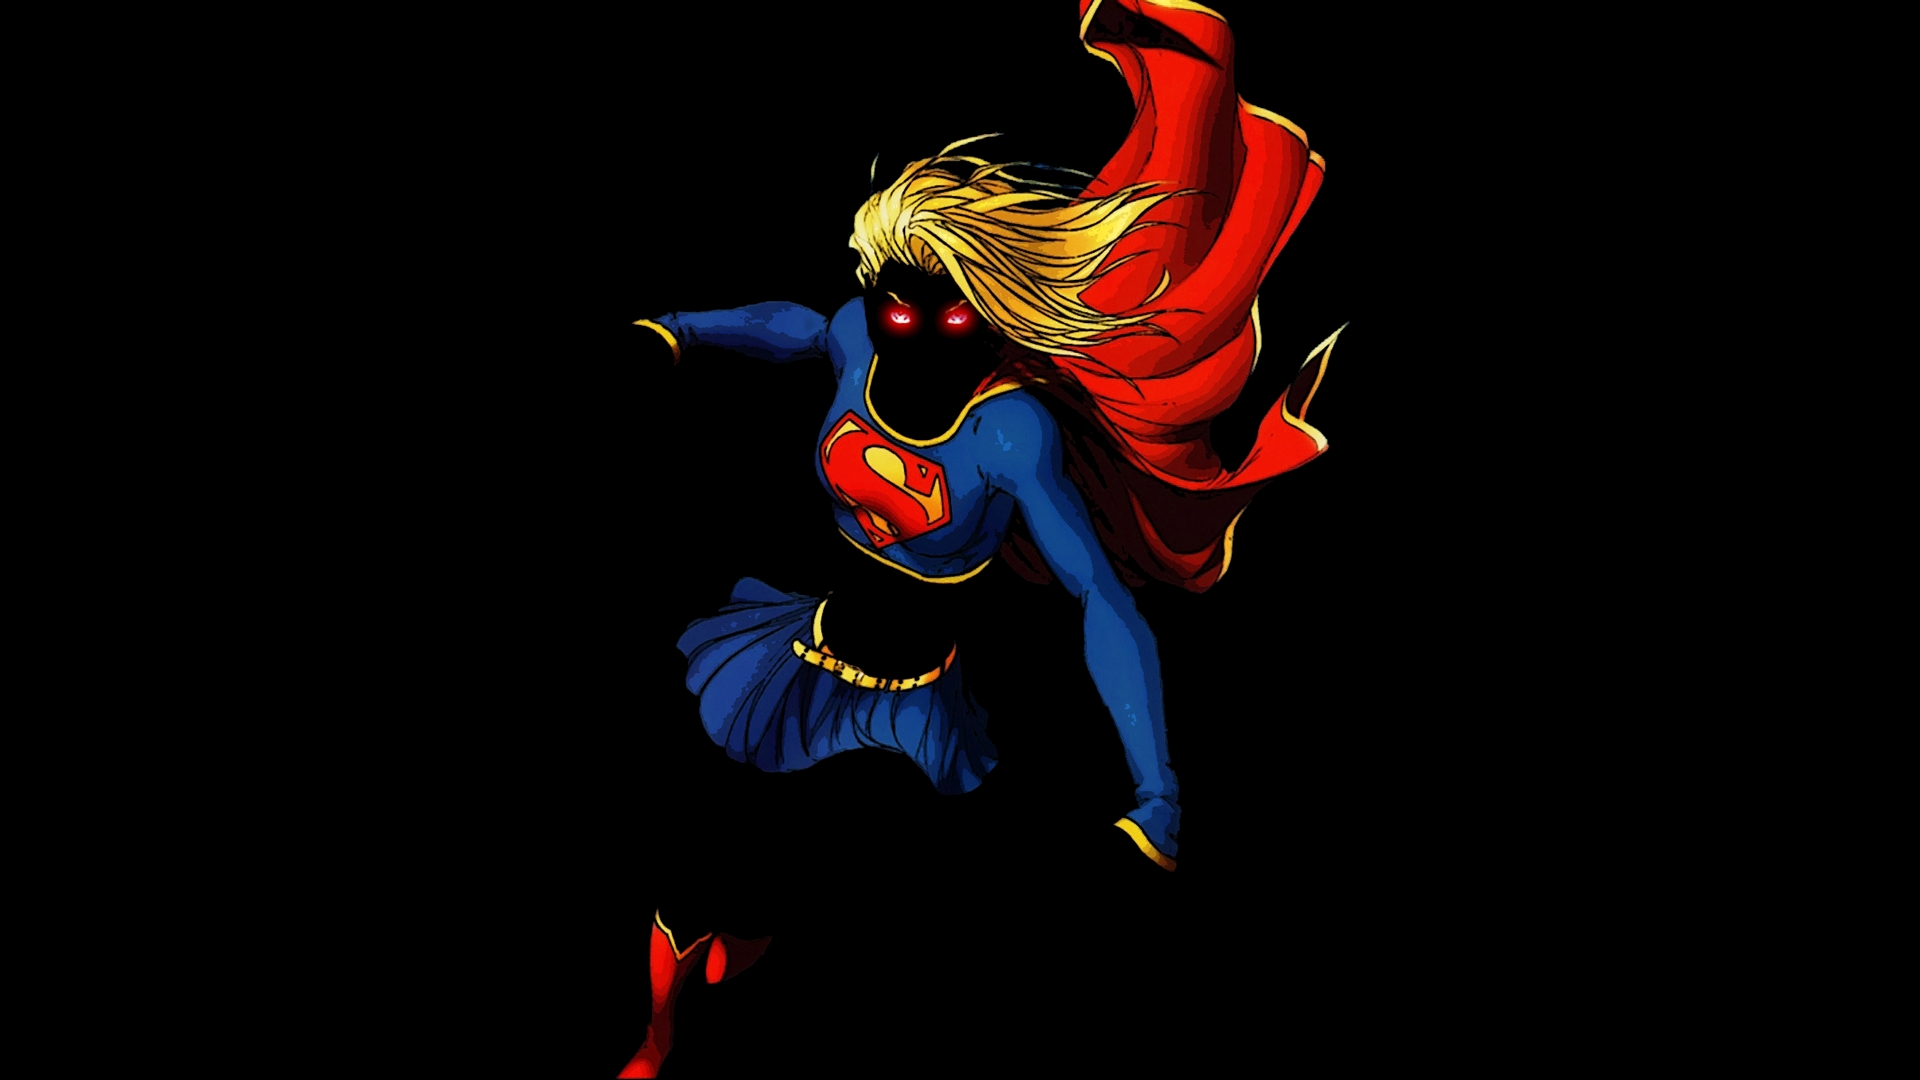 Supergirl full hd wallpaper and background image - Superhero iphone wallpaper hd ...